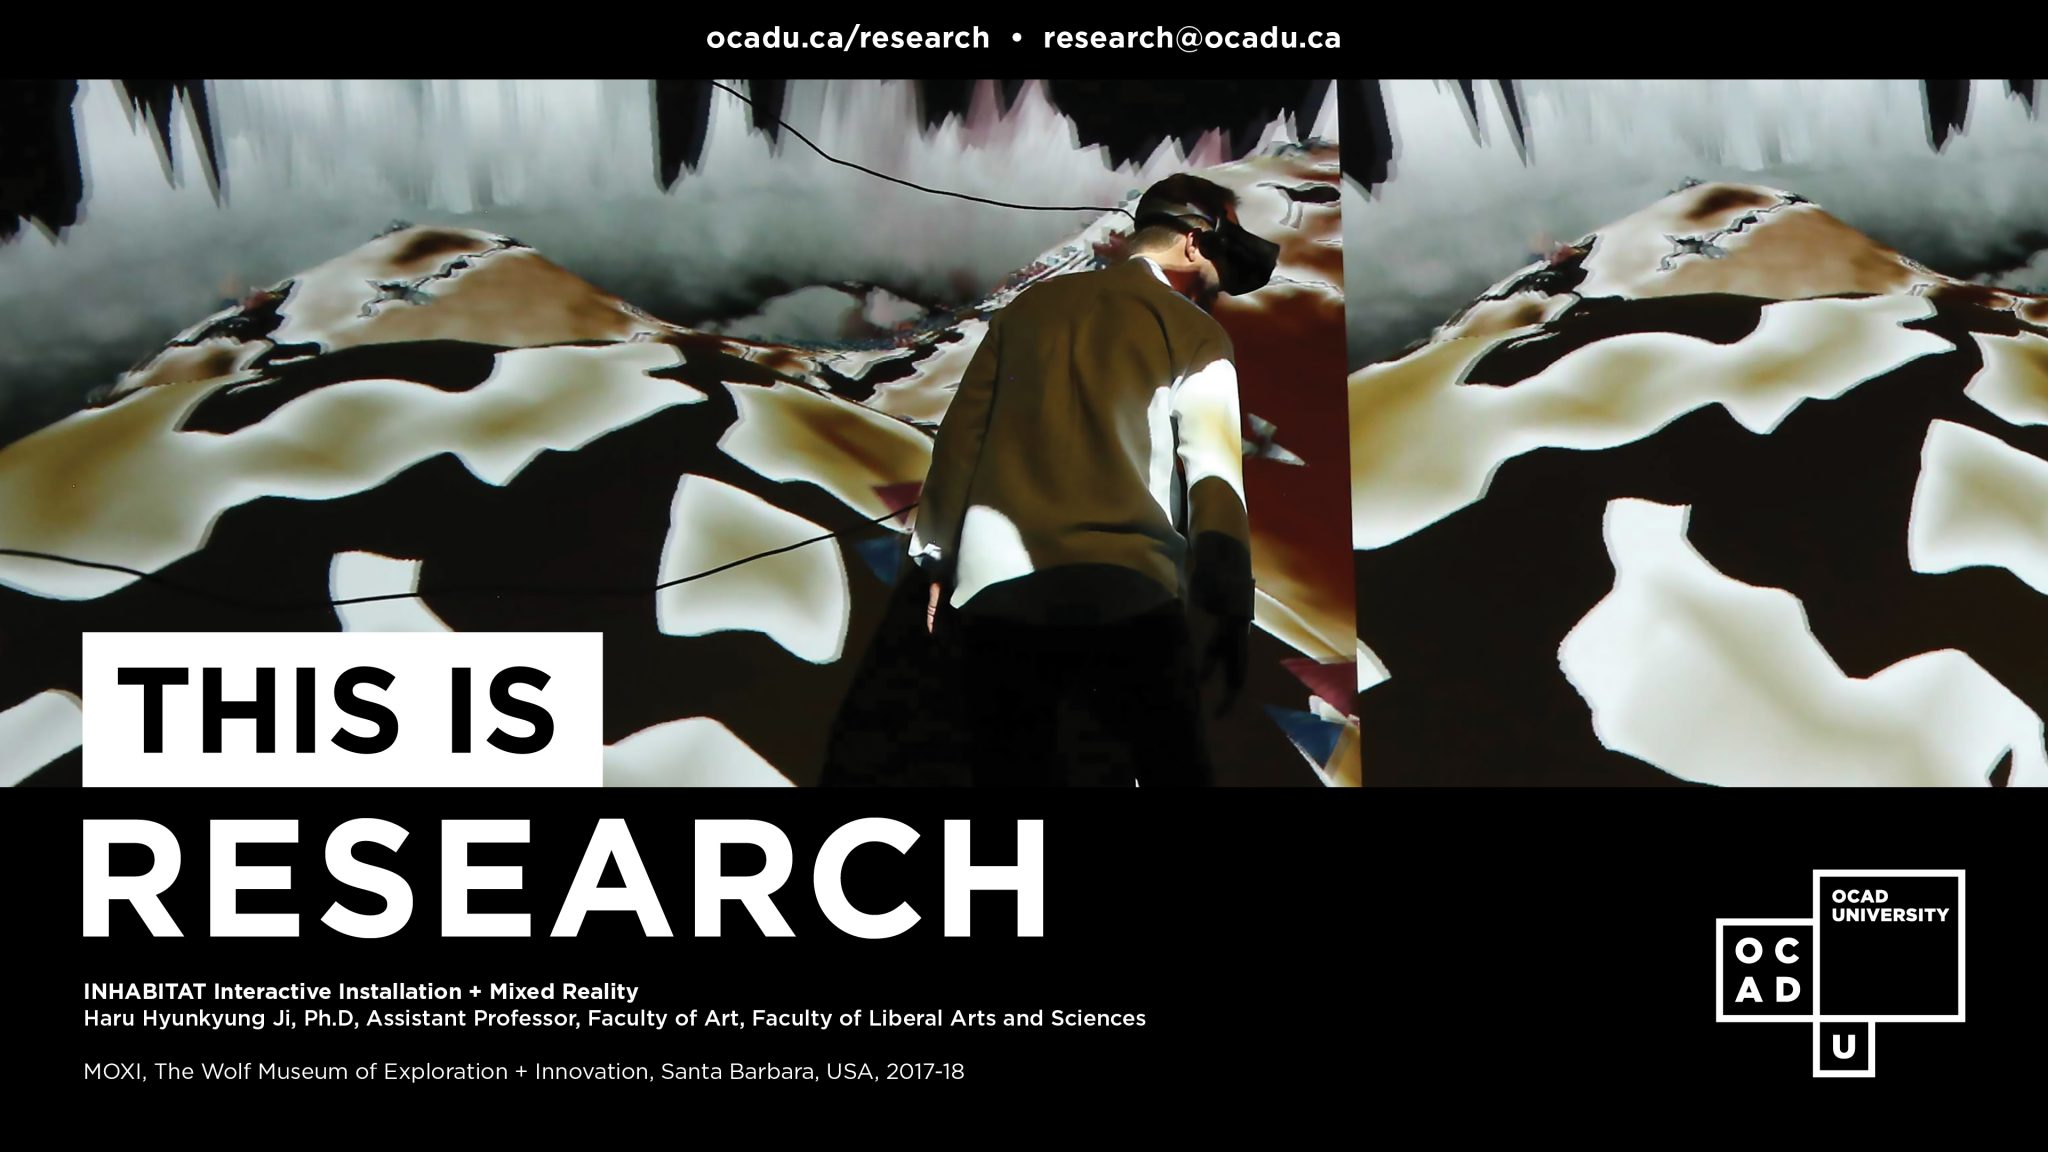 thisisresearchcampaign_screen_inhabitat